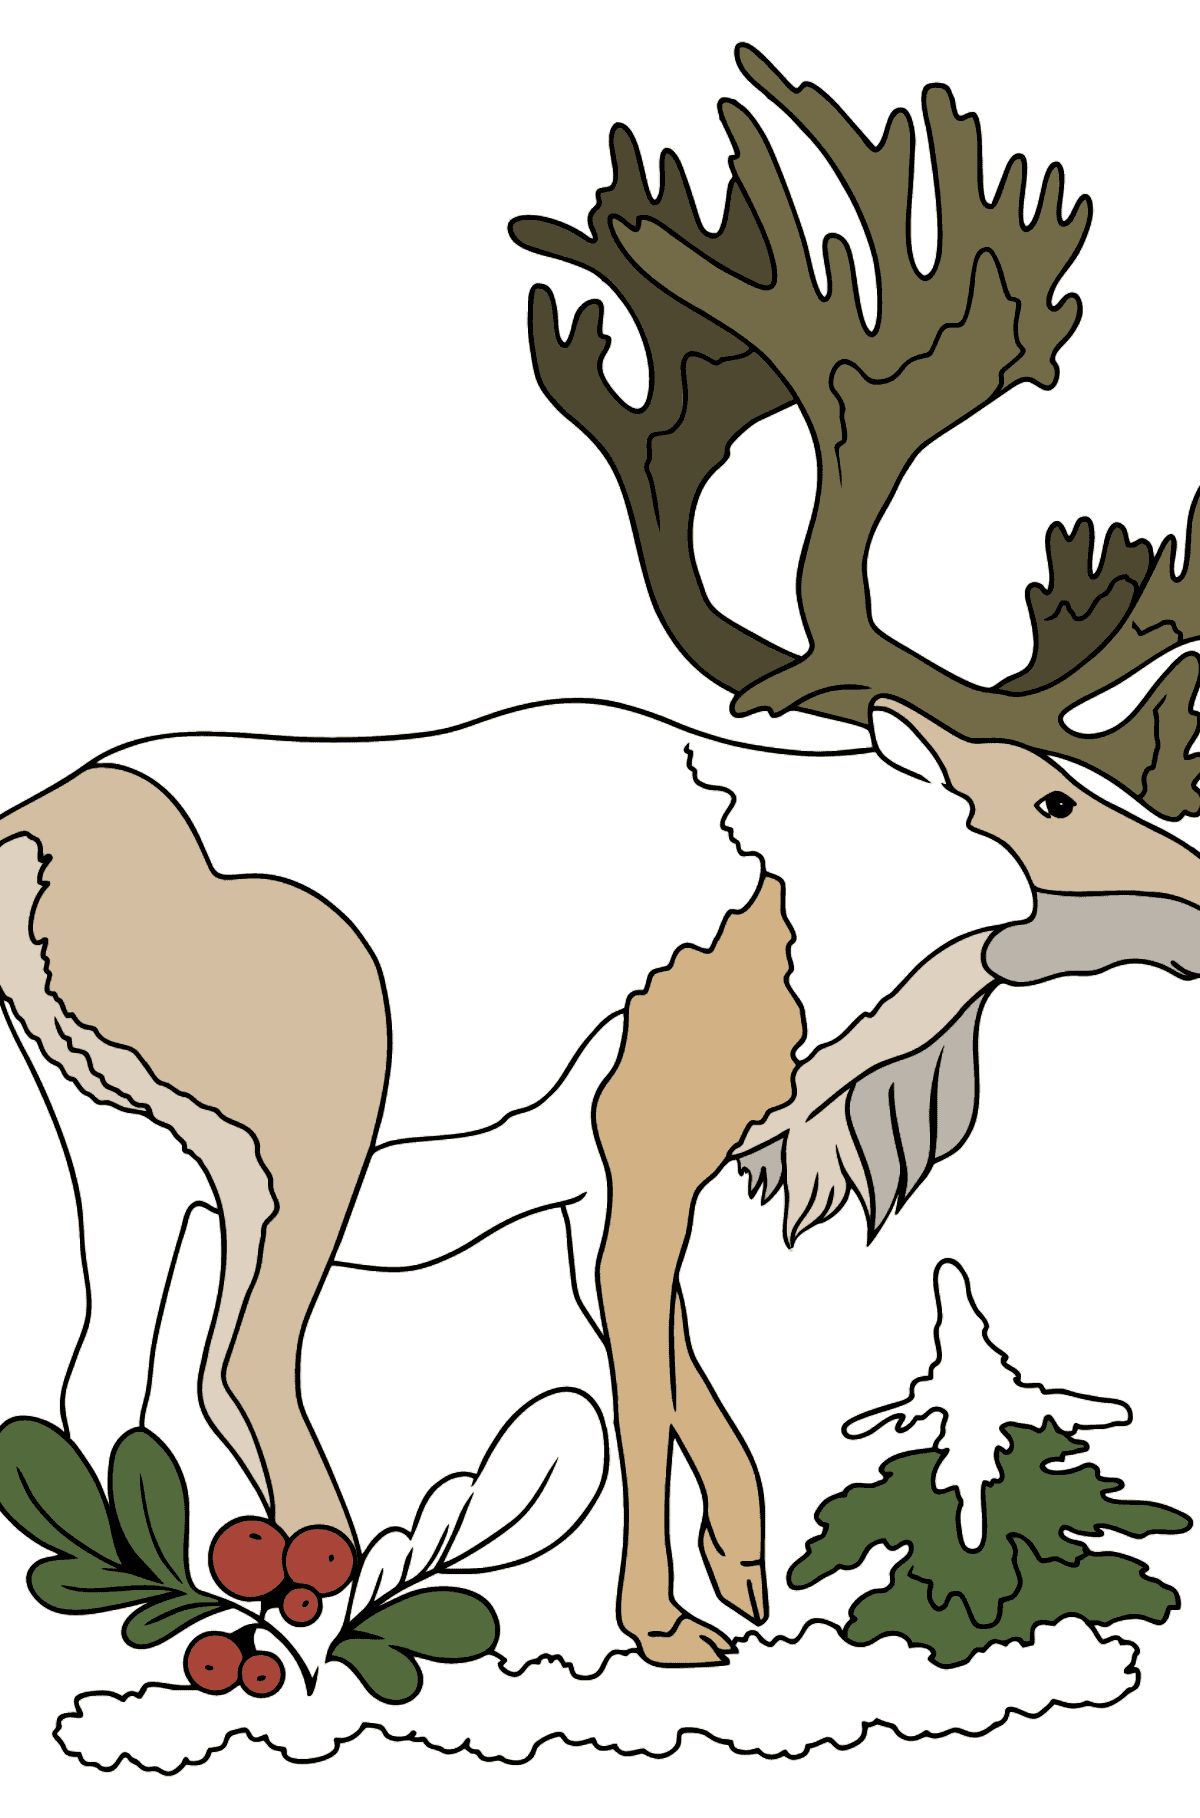 Coloring Page - a Deer with Gorgeous Antlers - Coloring Pages for Kids